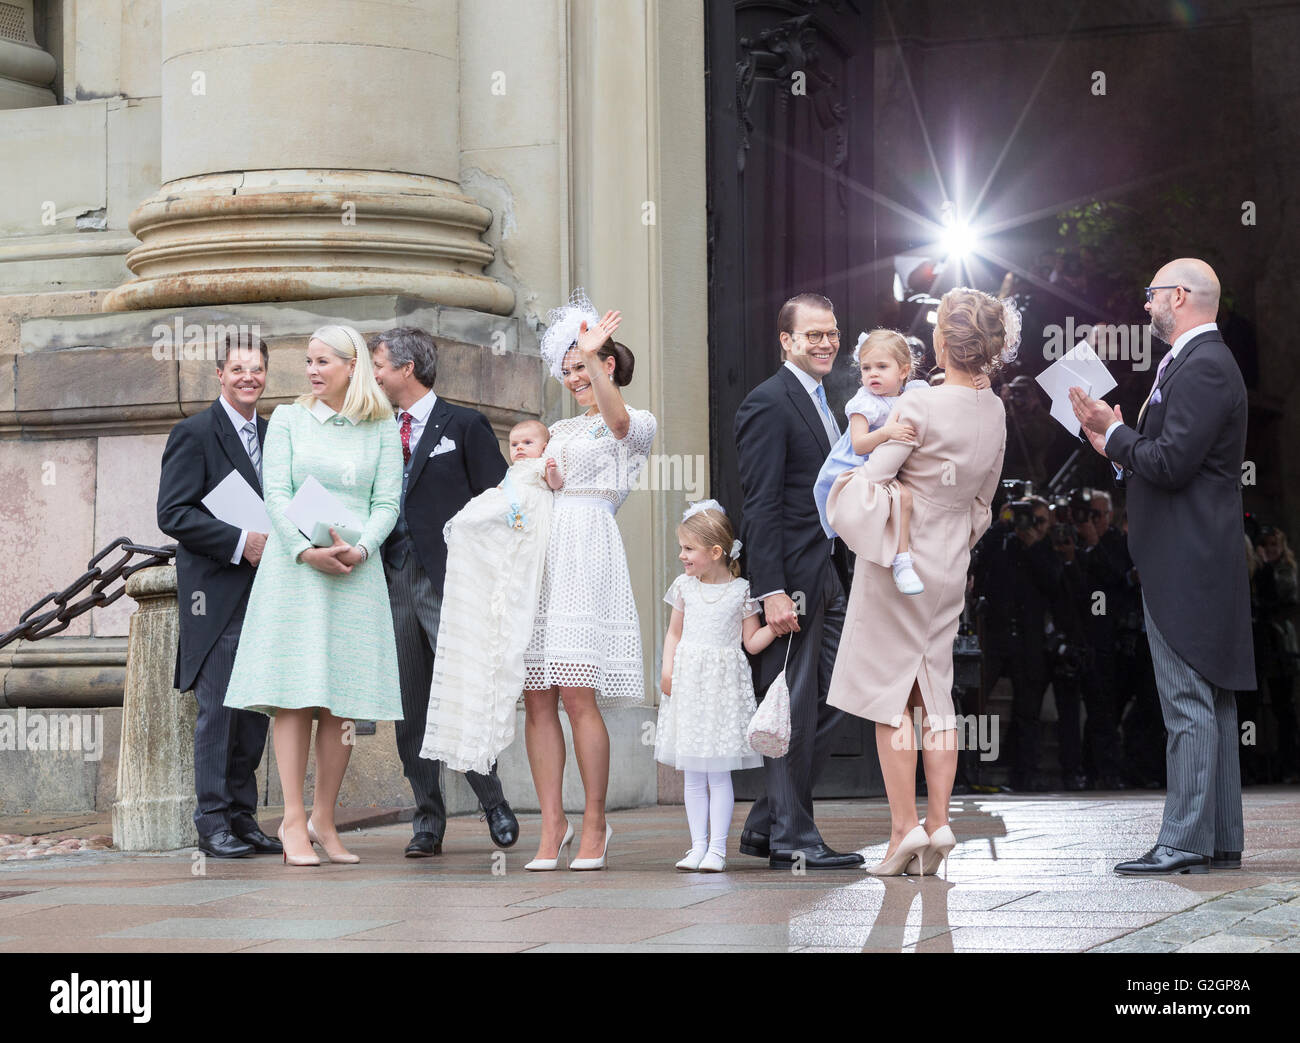 Royal Baptism in Sweden May 2016 – Prince Oscar of Sweden. The closest family and godparents are seen - Stock Image